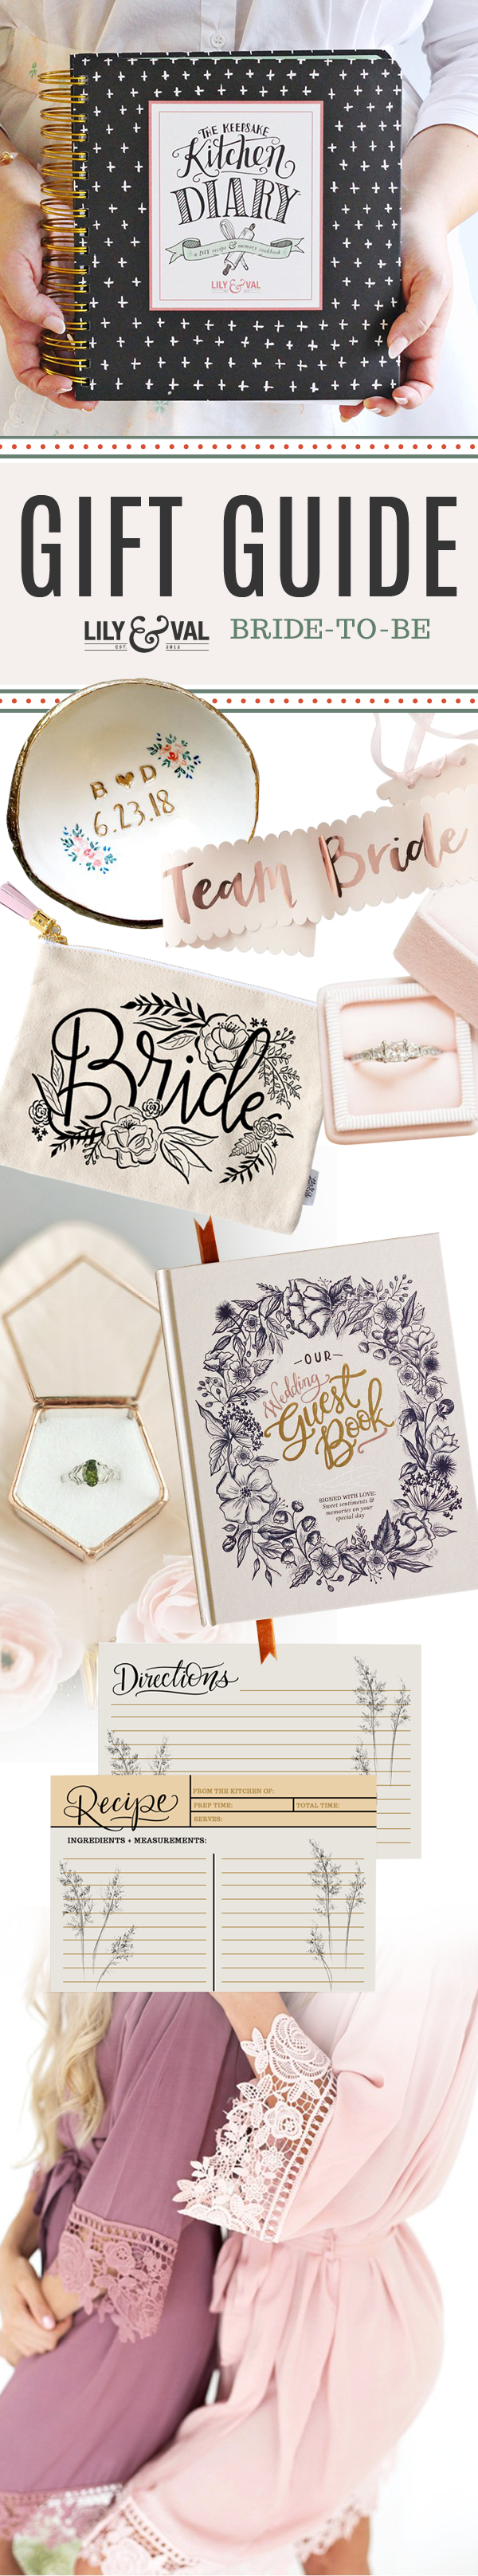 Lily & Val Gift Guide: The Bride-To-Be